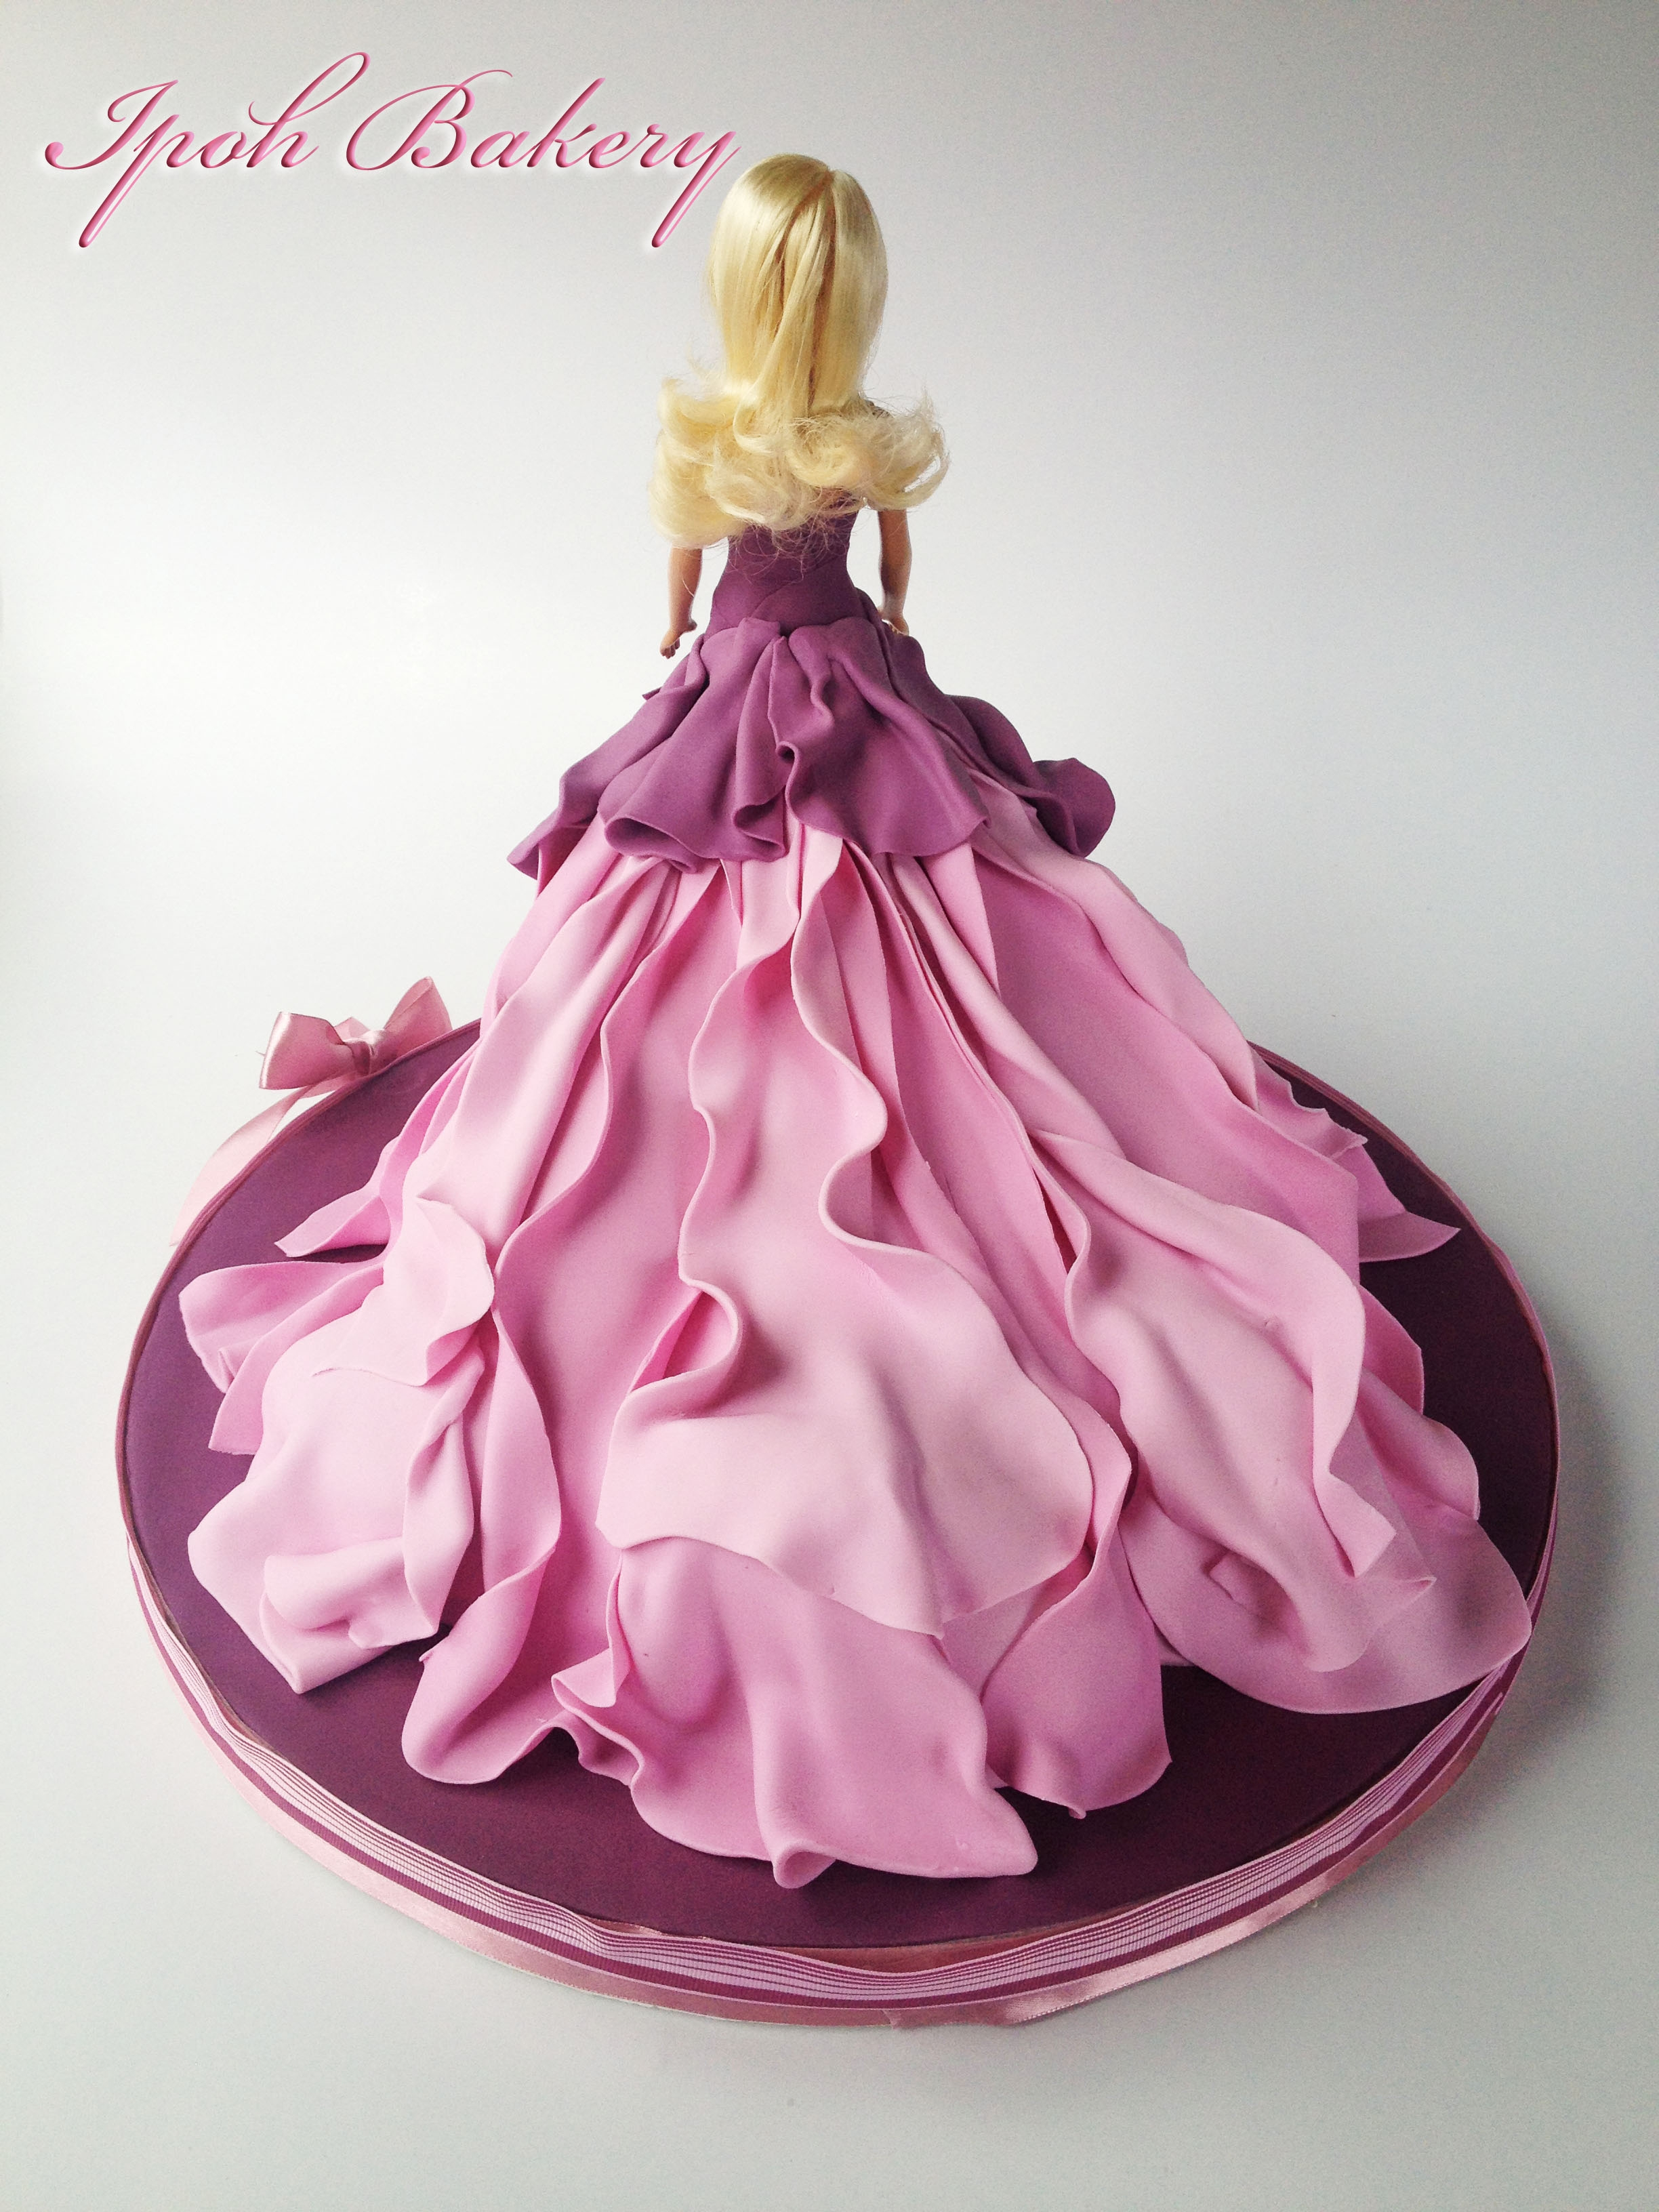 Cake Decorating Ideas Barbie : A Different Take On The Barbie Doll Cake Instead Of A Dome ...